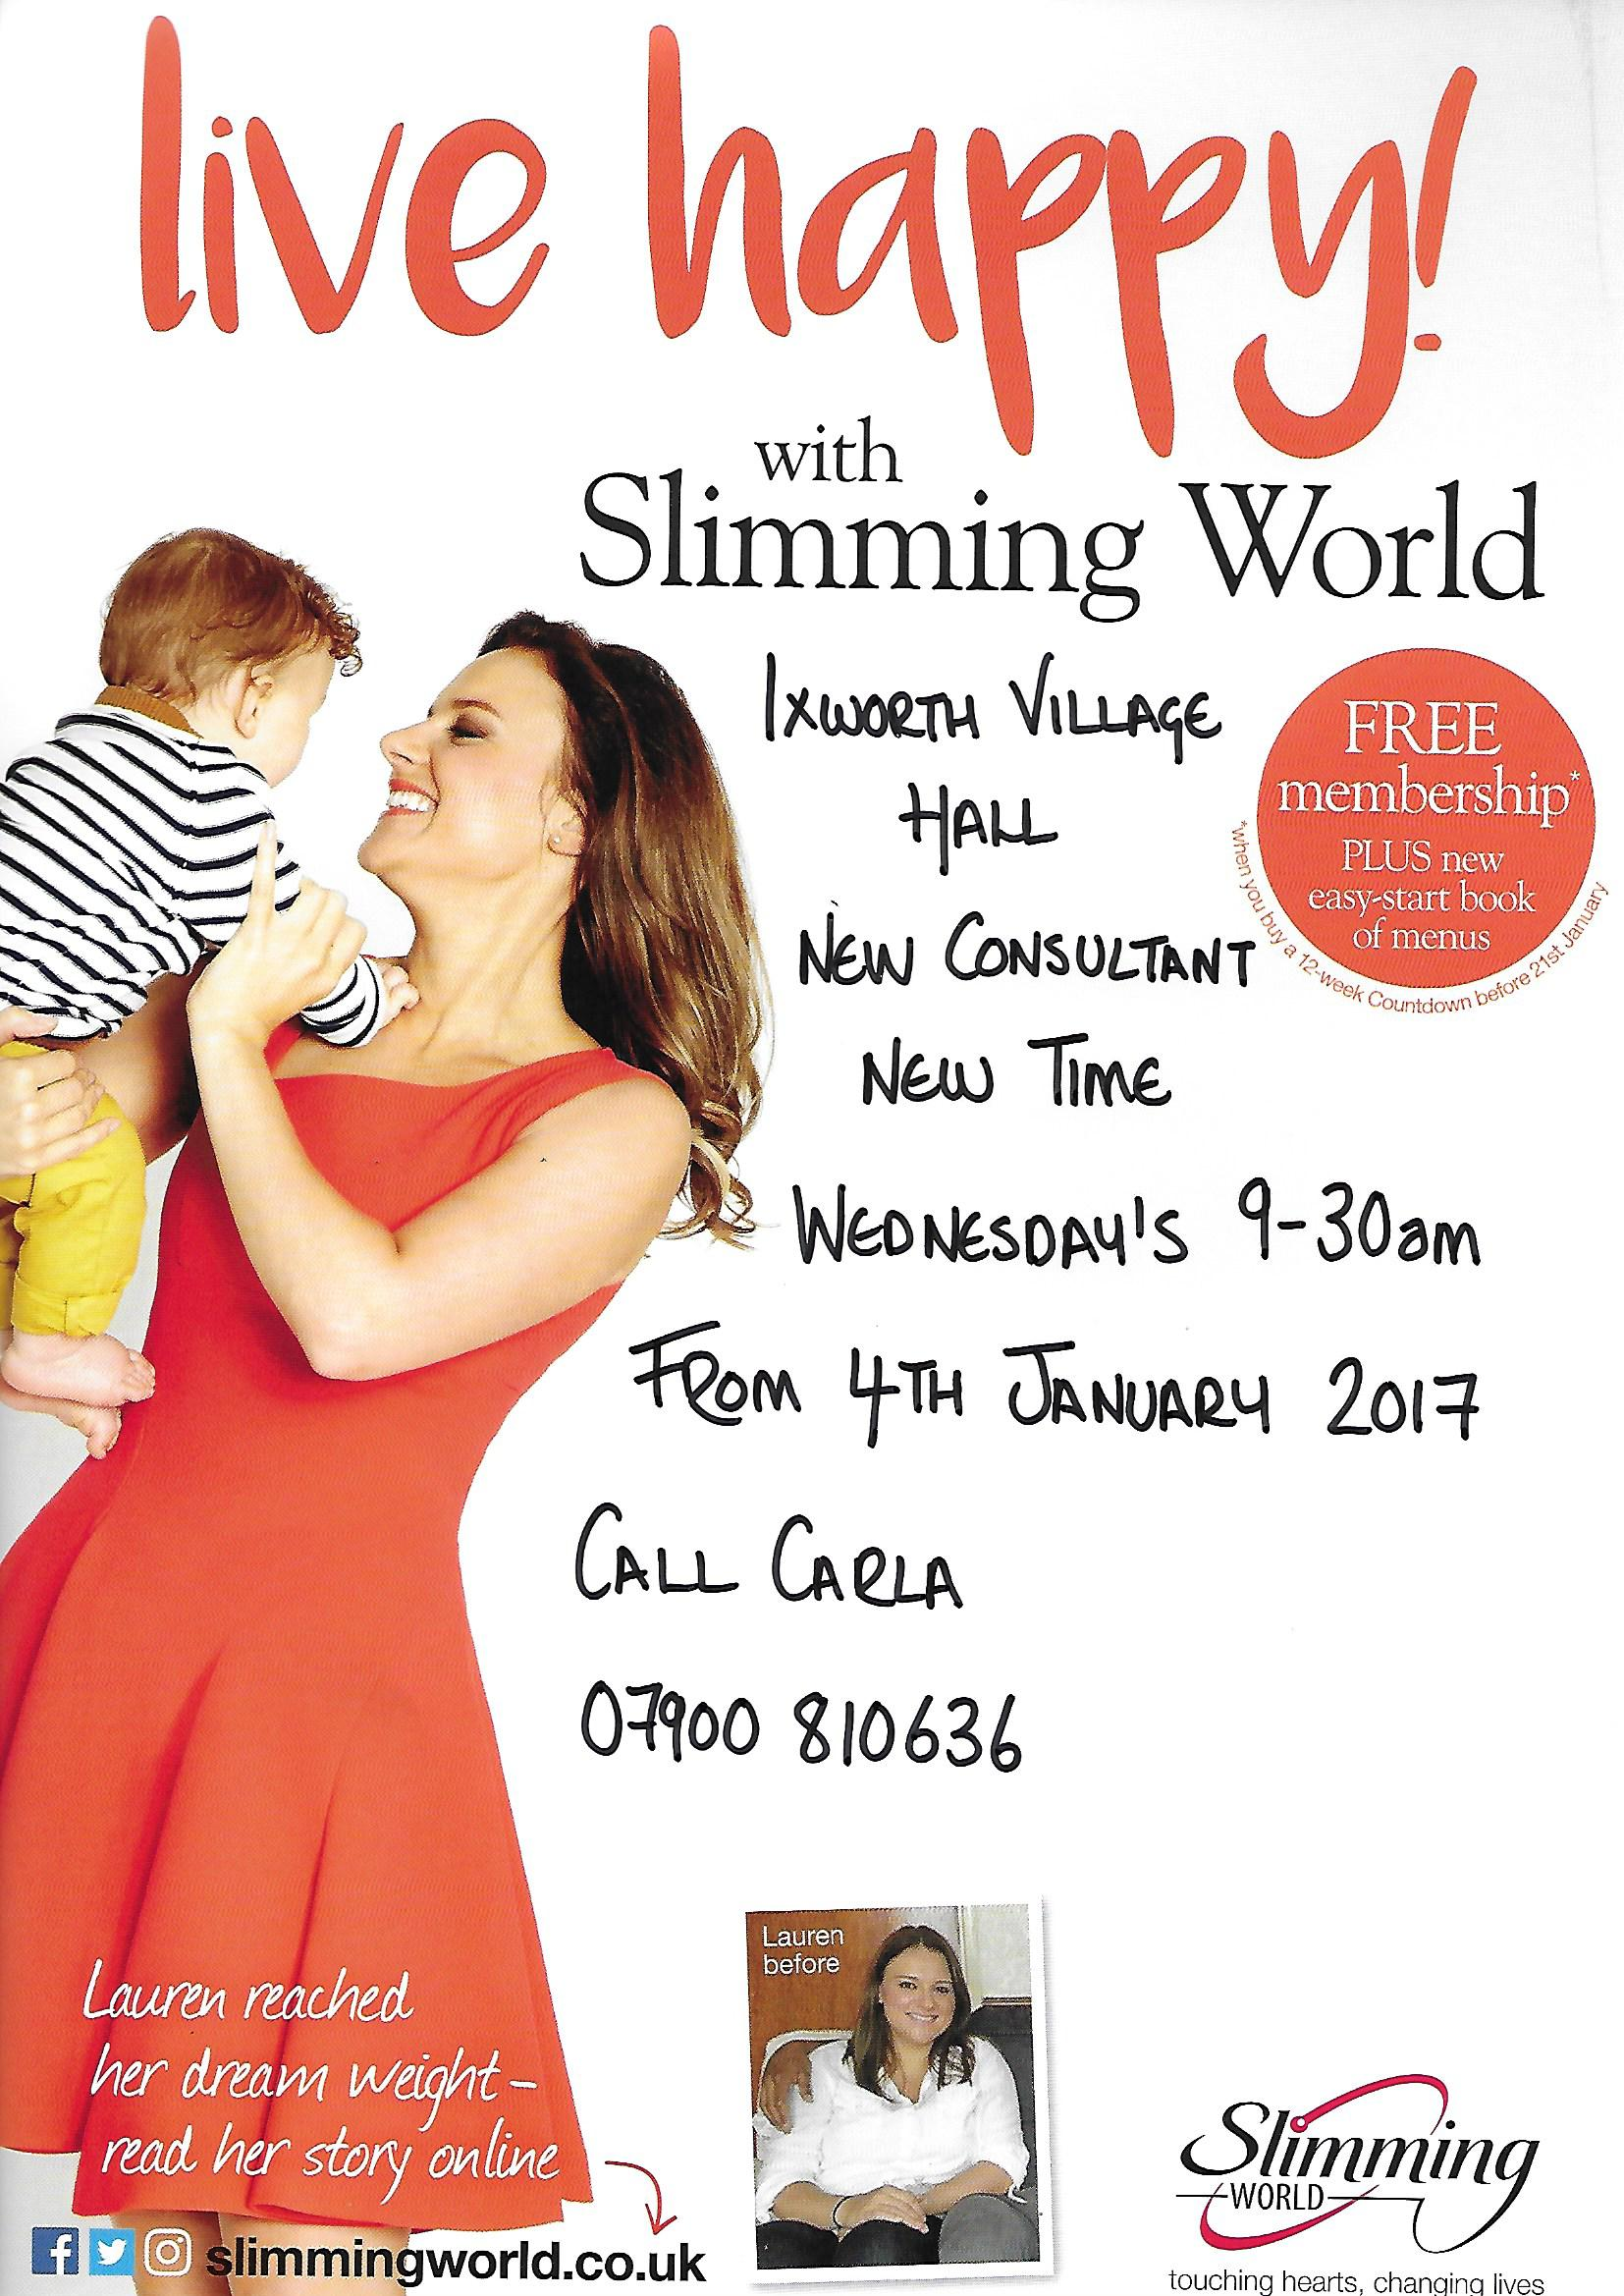 Slimming World Ixworth Village Hall: the slimming world